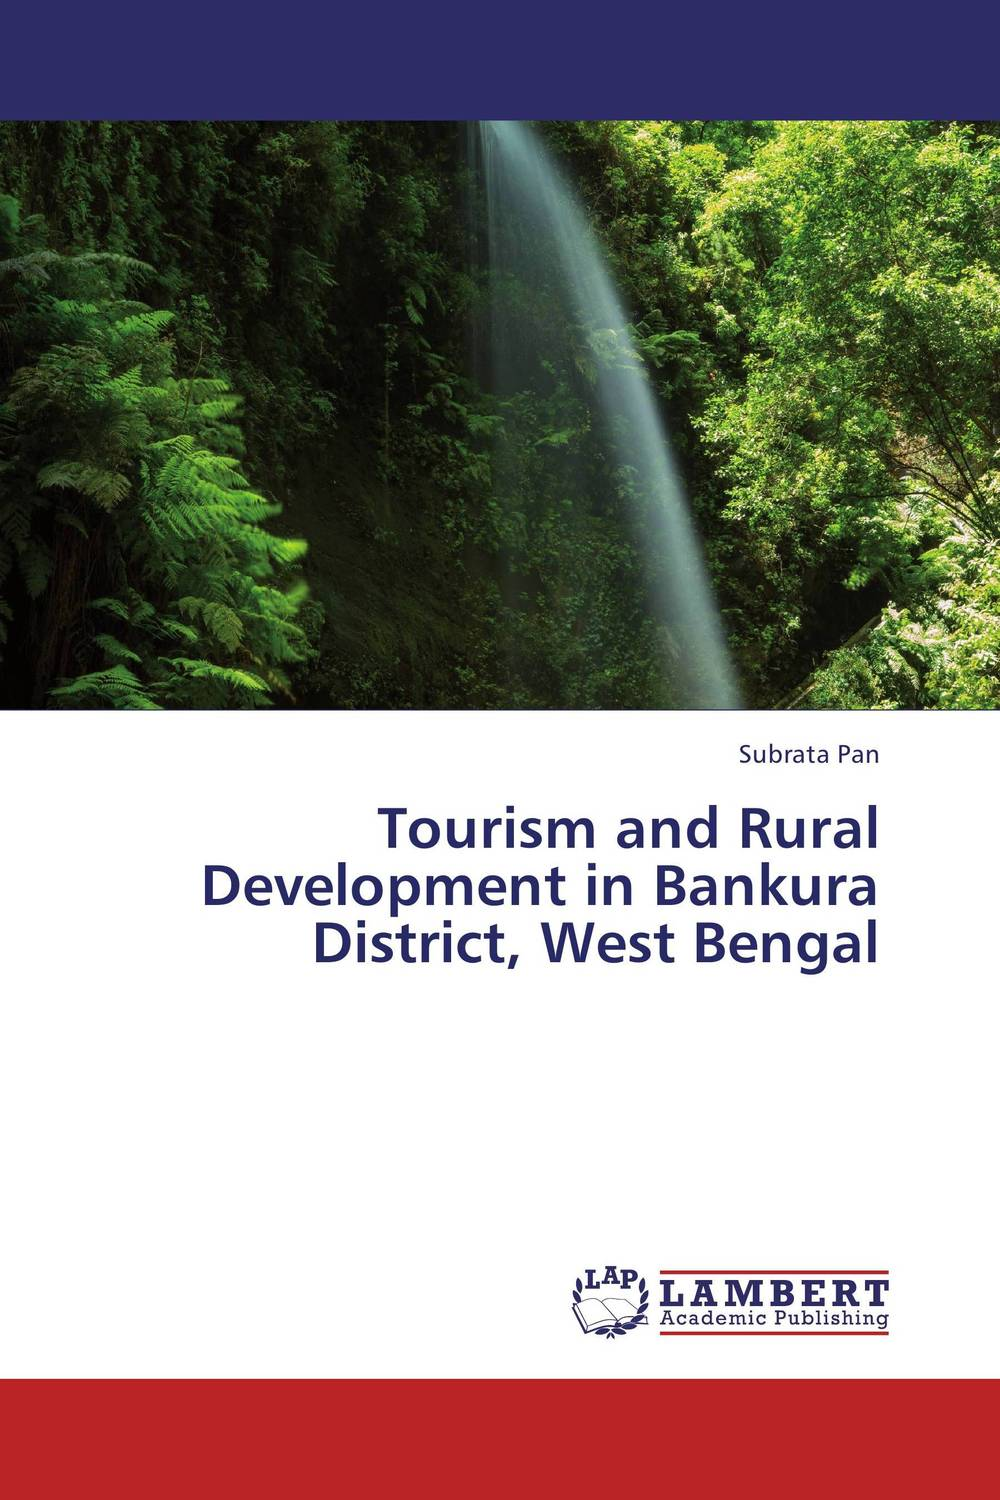 Tourism and Rural Development in Bankura District, West Bengal olorunfemi samuel oluwaseyi tourism development in nigeria